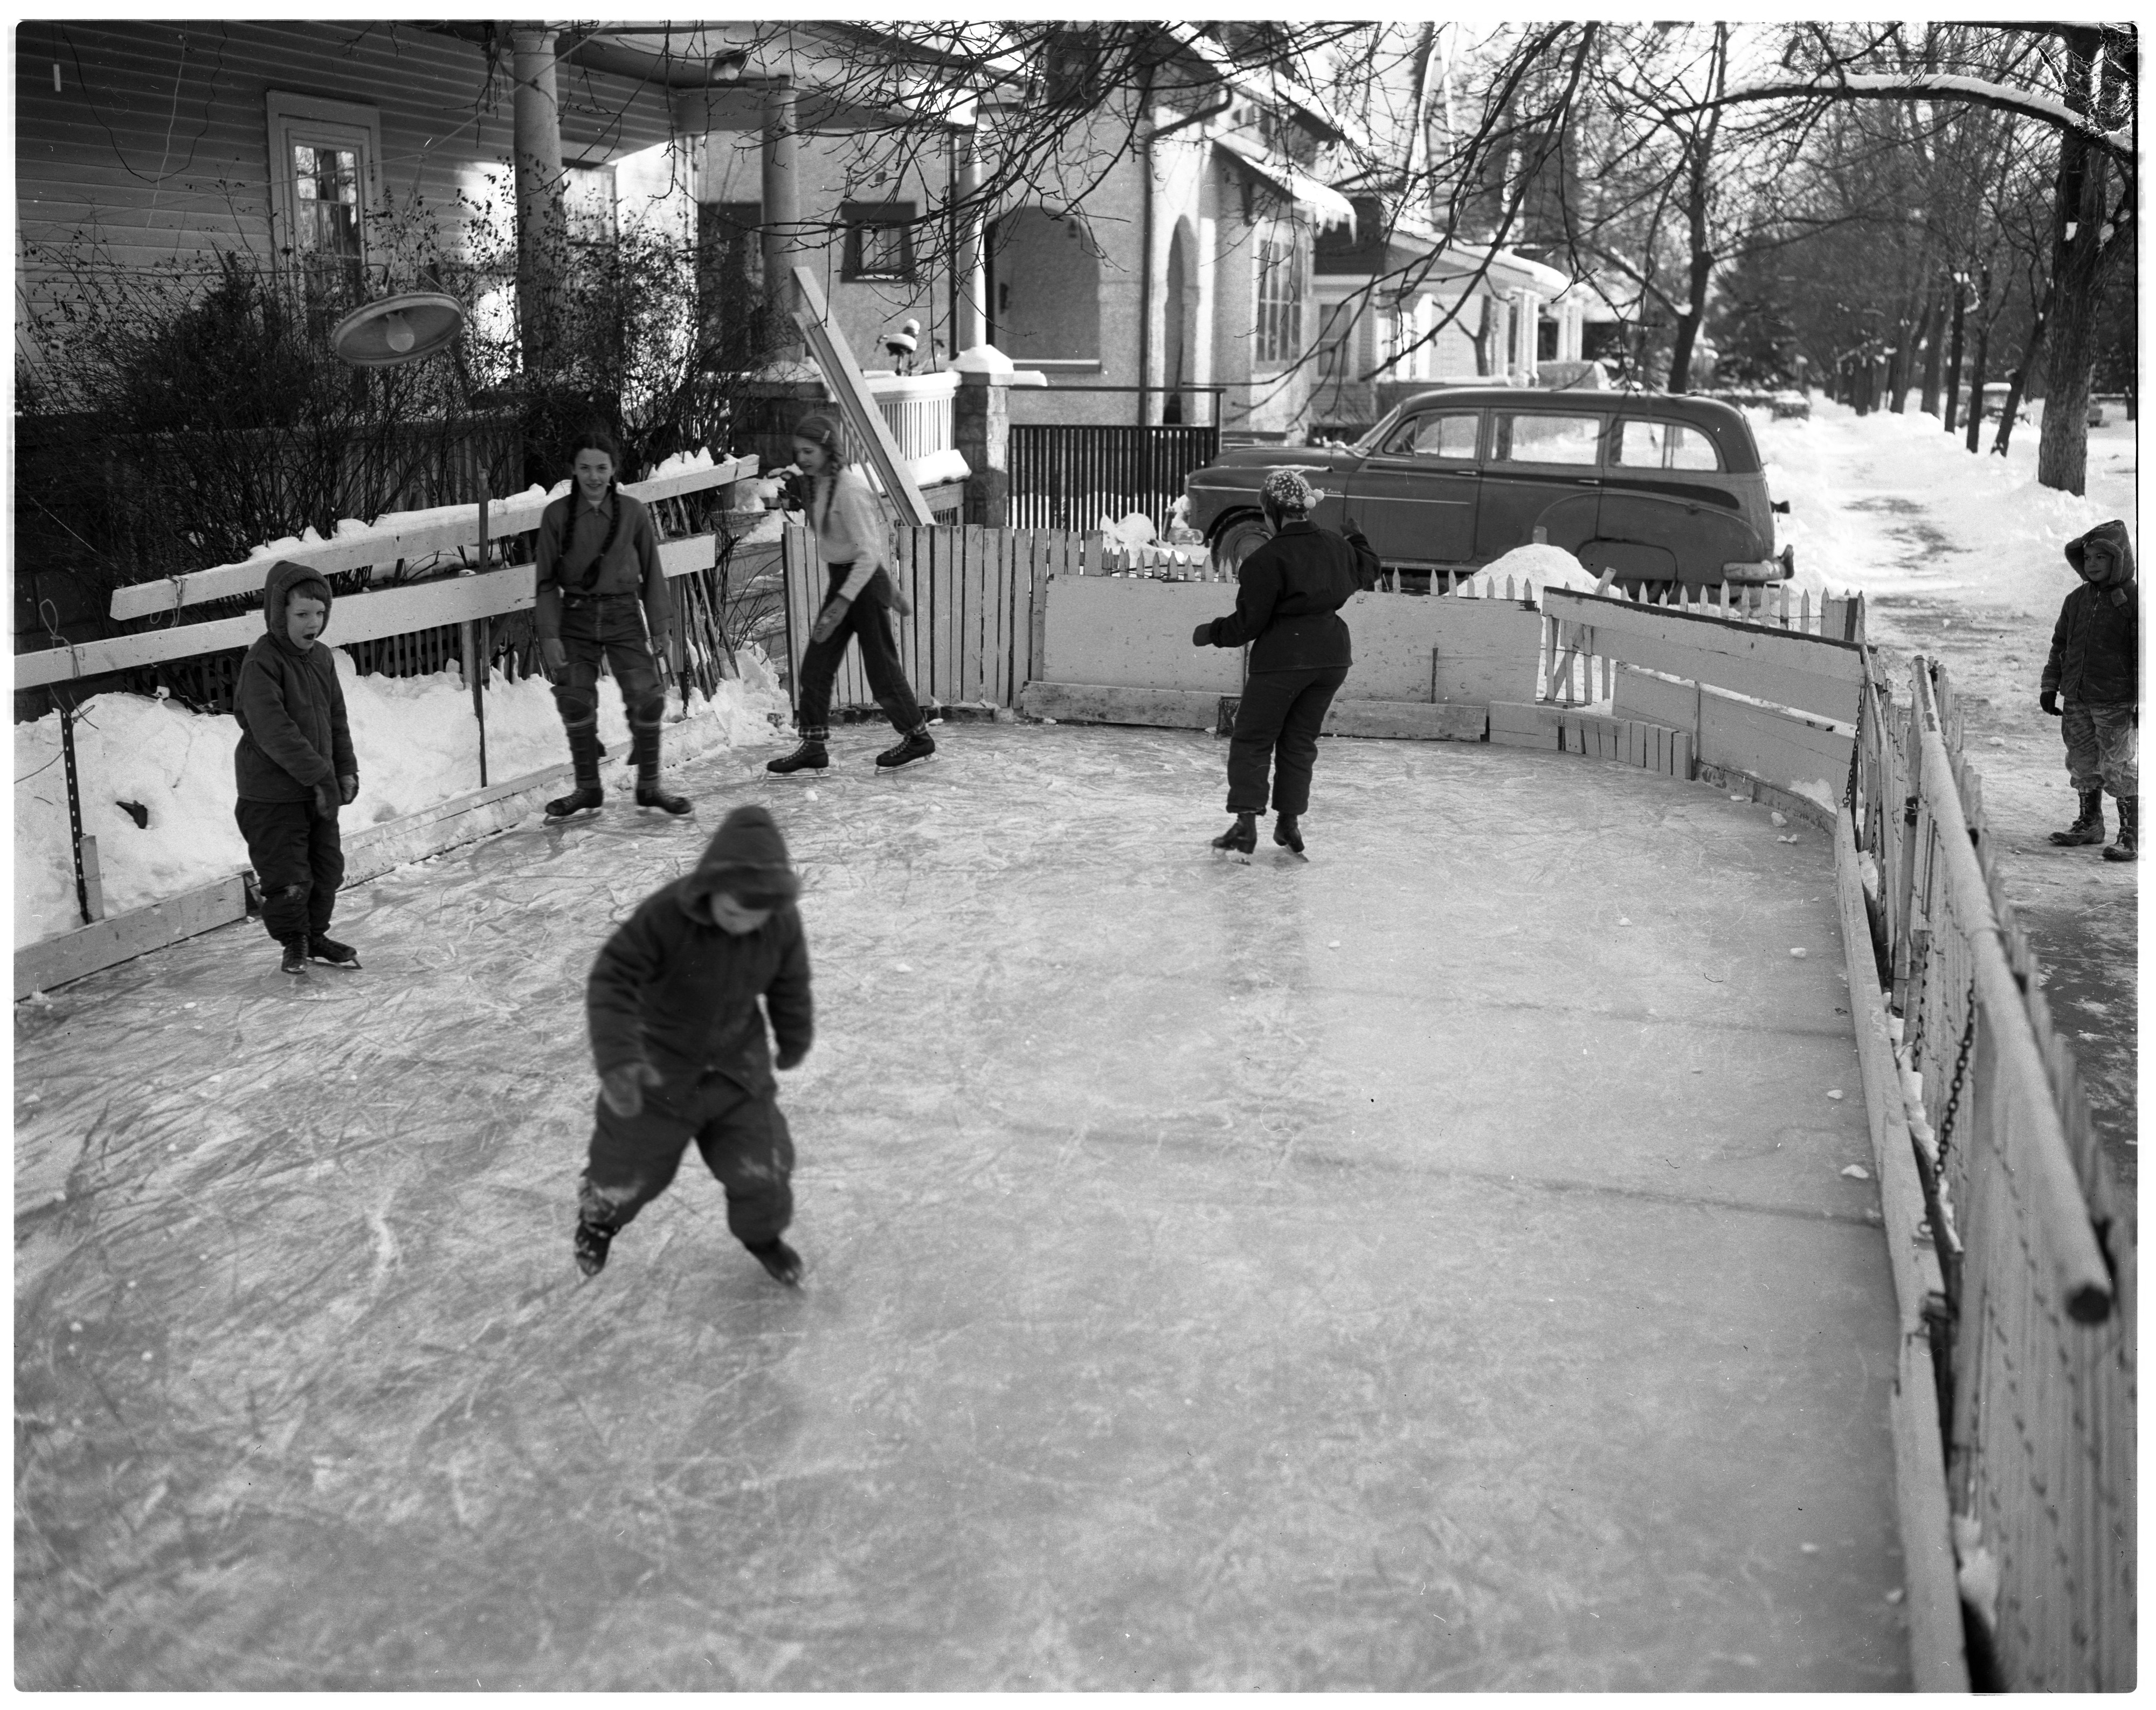 Home Made Ice Rink, January 1957 image